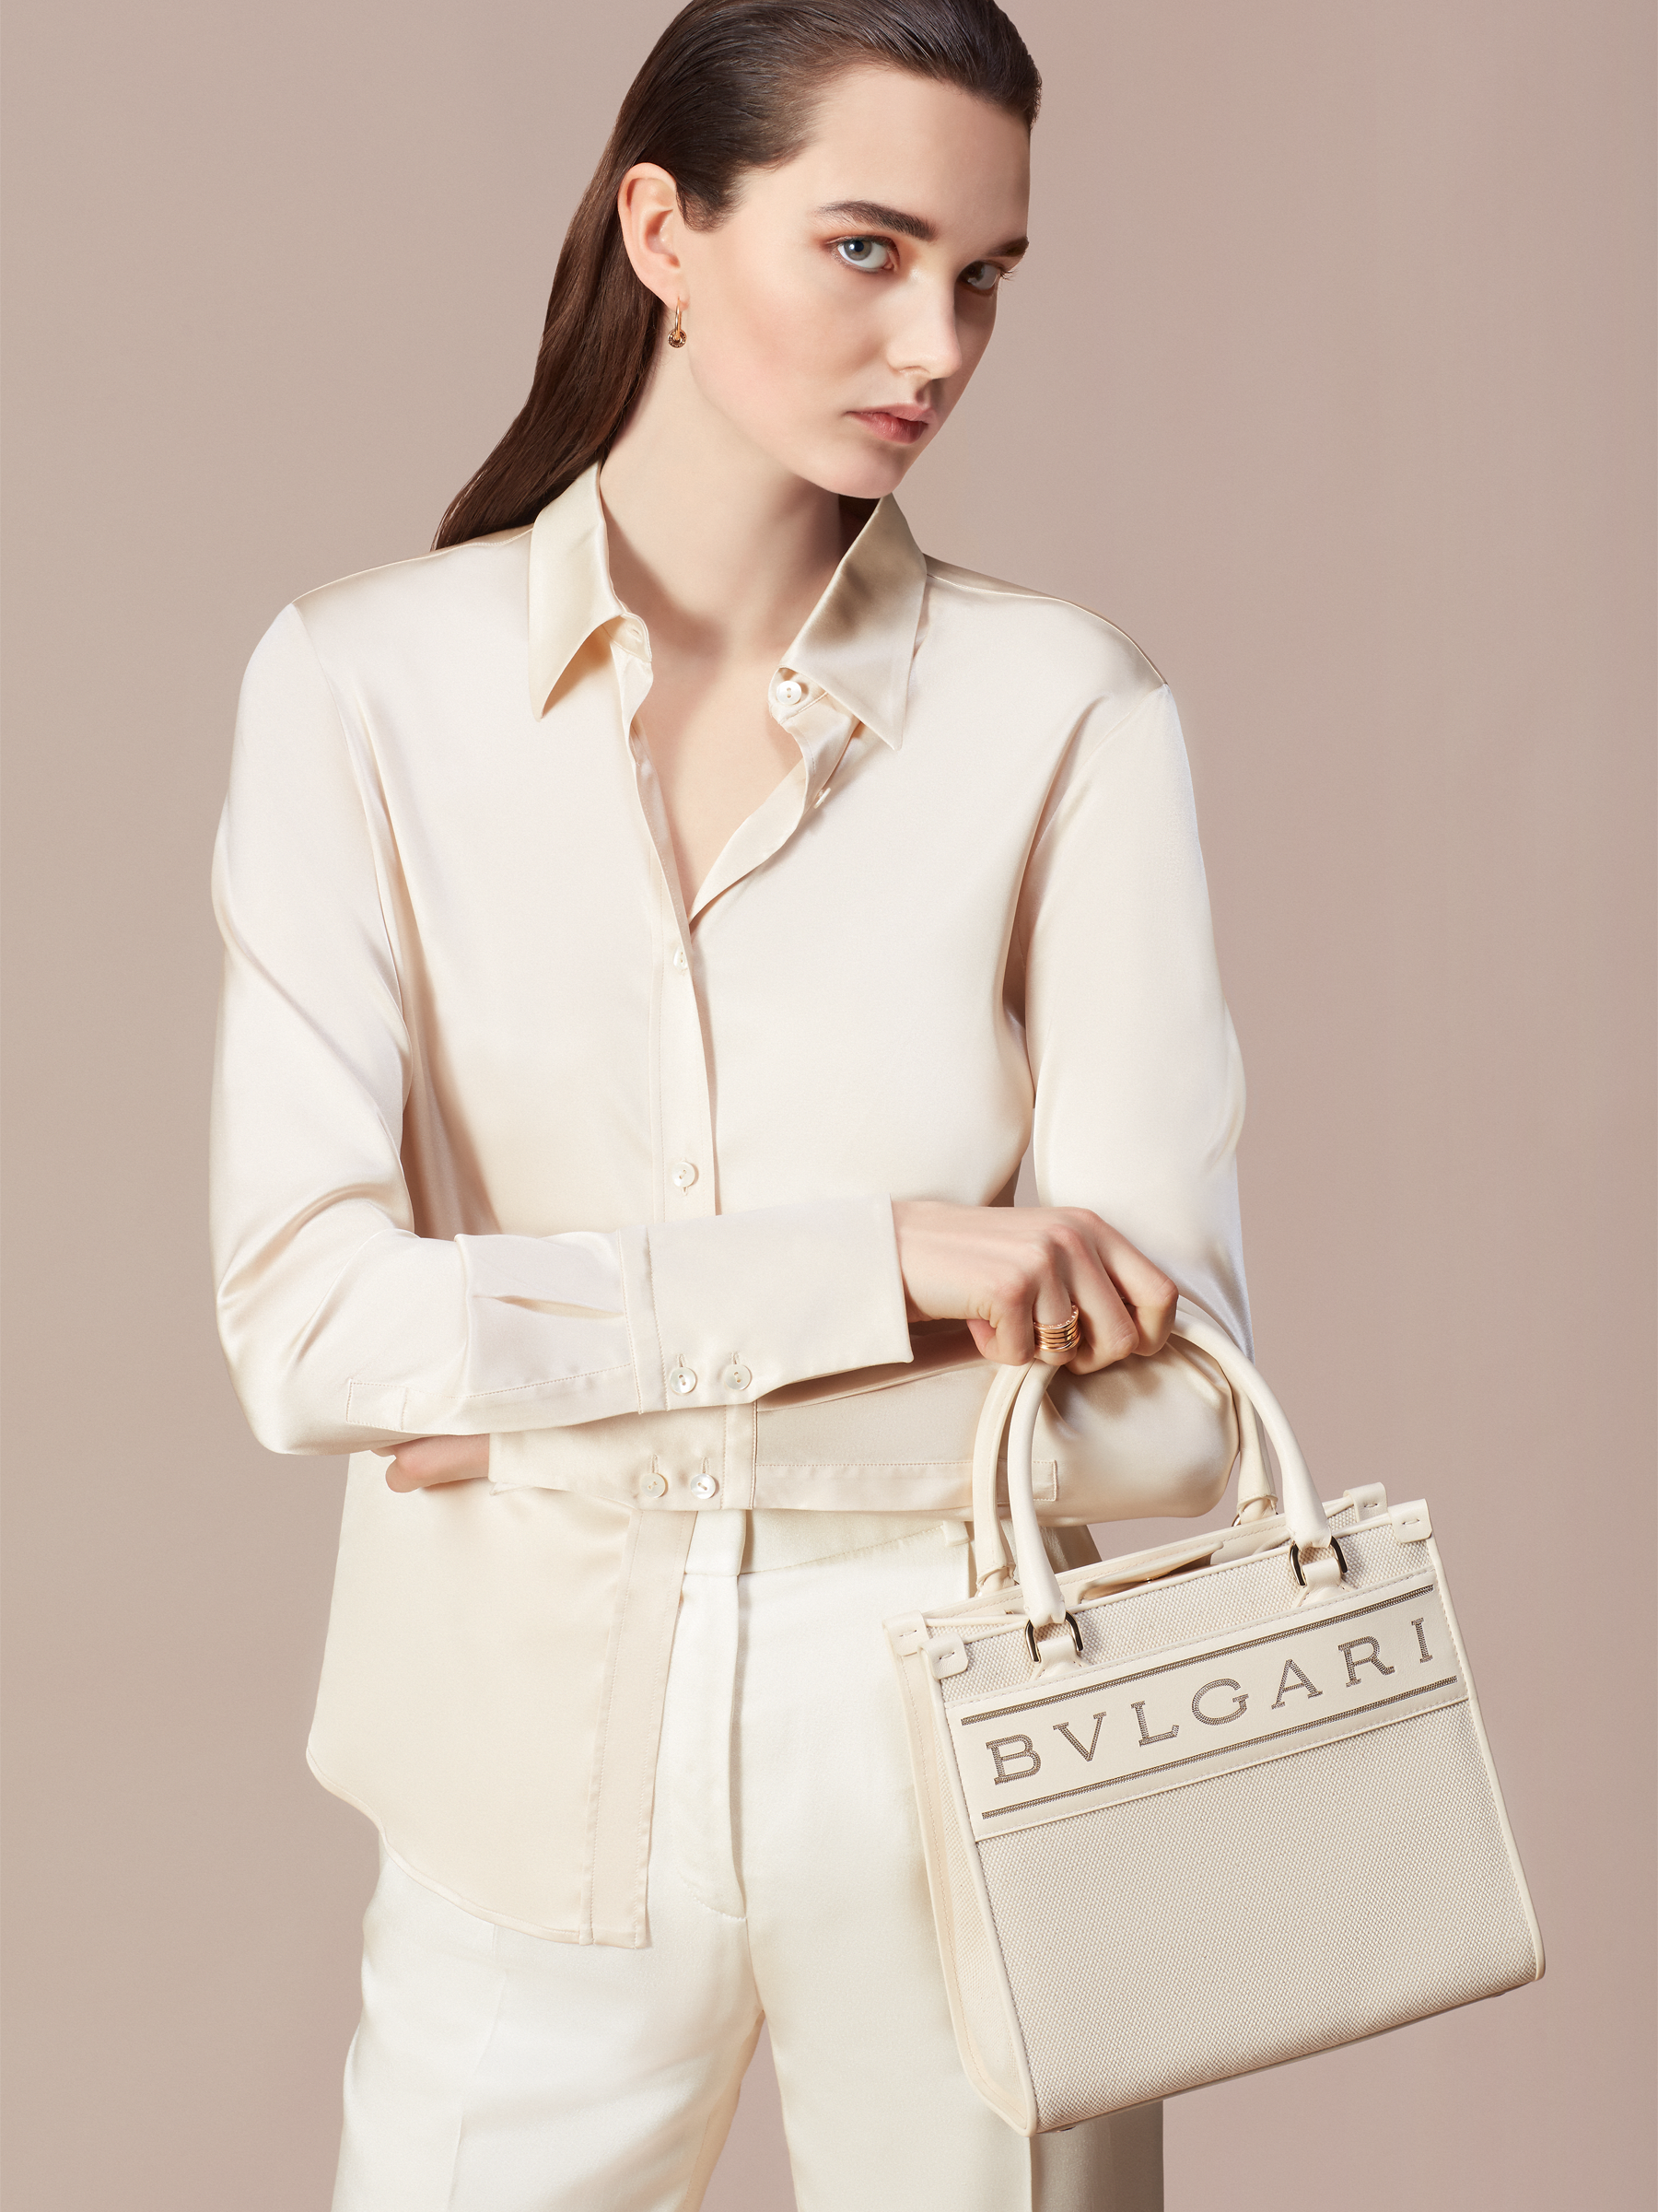 """""""Bvlgari Logo"""" small tote bag in Ivory Opal white canvas, with Beet Amethyst purple grosgrain inner lining. Bvlgari logo featured with light gold-plated brass chain inserts on the Ivory Opal white calf leather. BVL-1159-CC image 5"""